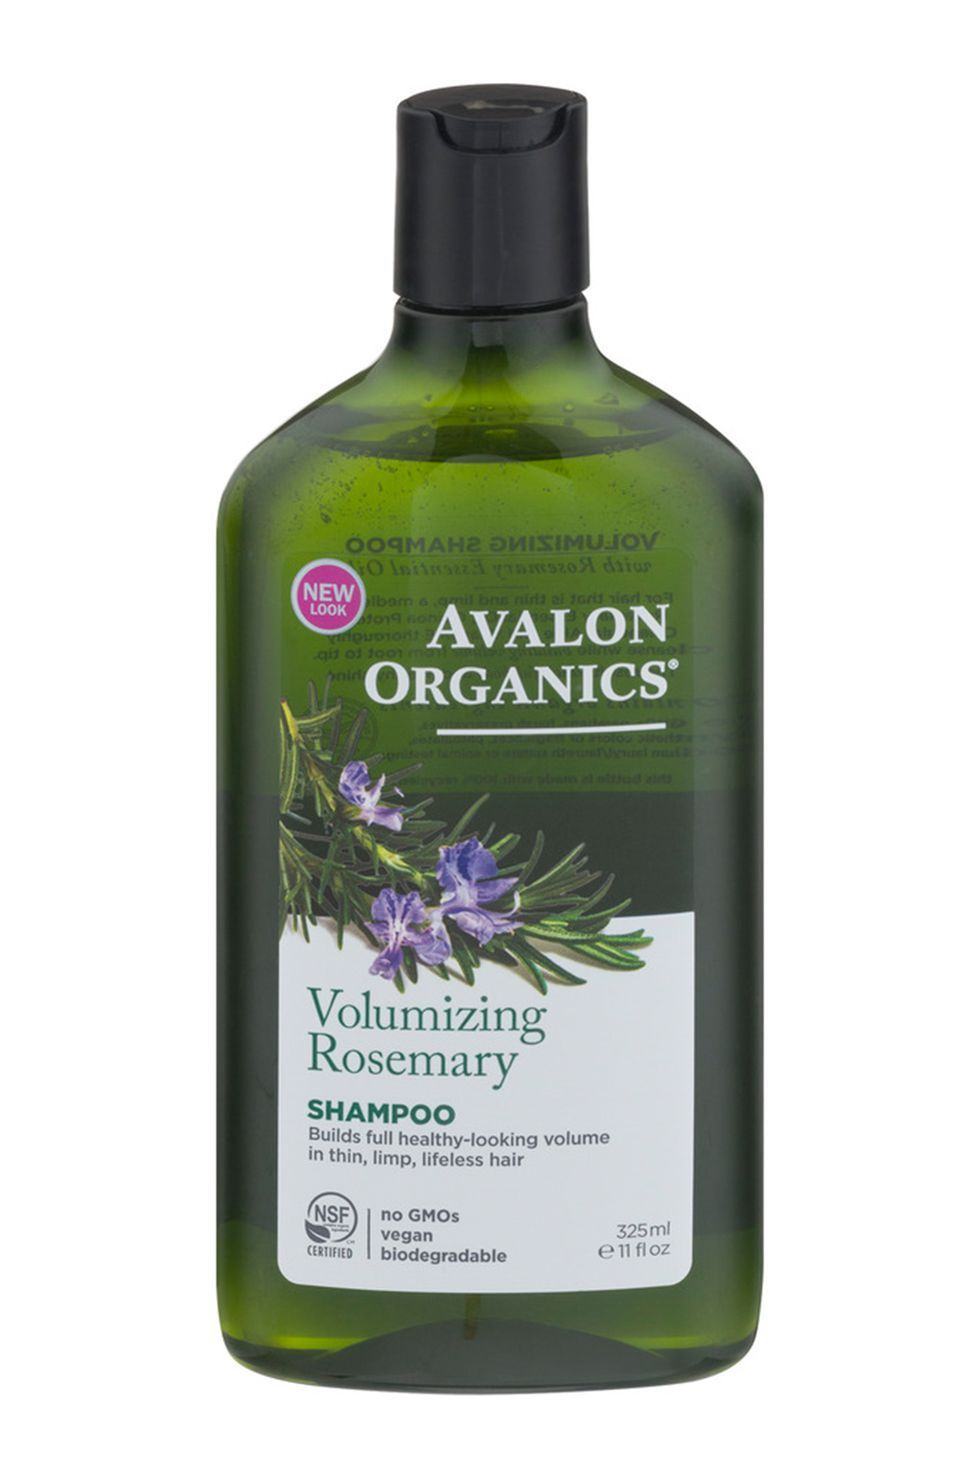 For Bigger, Fuller Hair Volumizing Rosemary Shampoo Avalon Organics amazon.com $24.39 SHOP NOW Certified organic botanicals (aloe leaf juice, rosemary extract, quinoa seed) work to plump and fluff even the limpest strands.